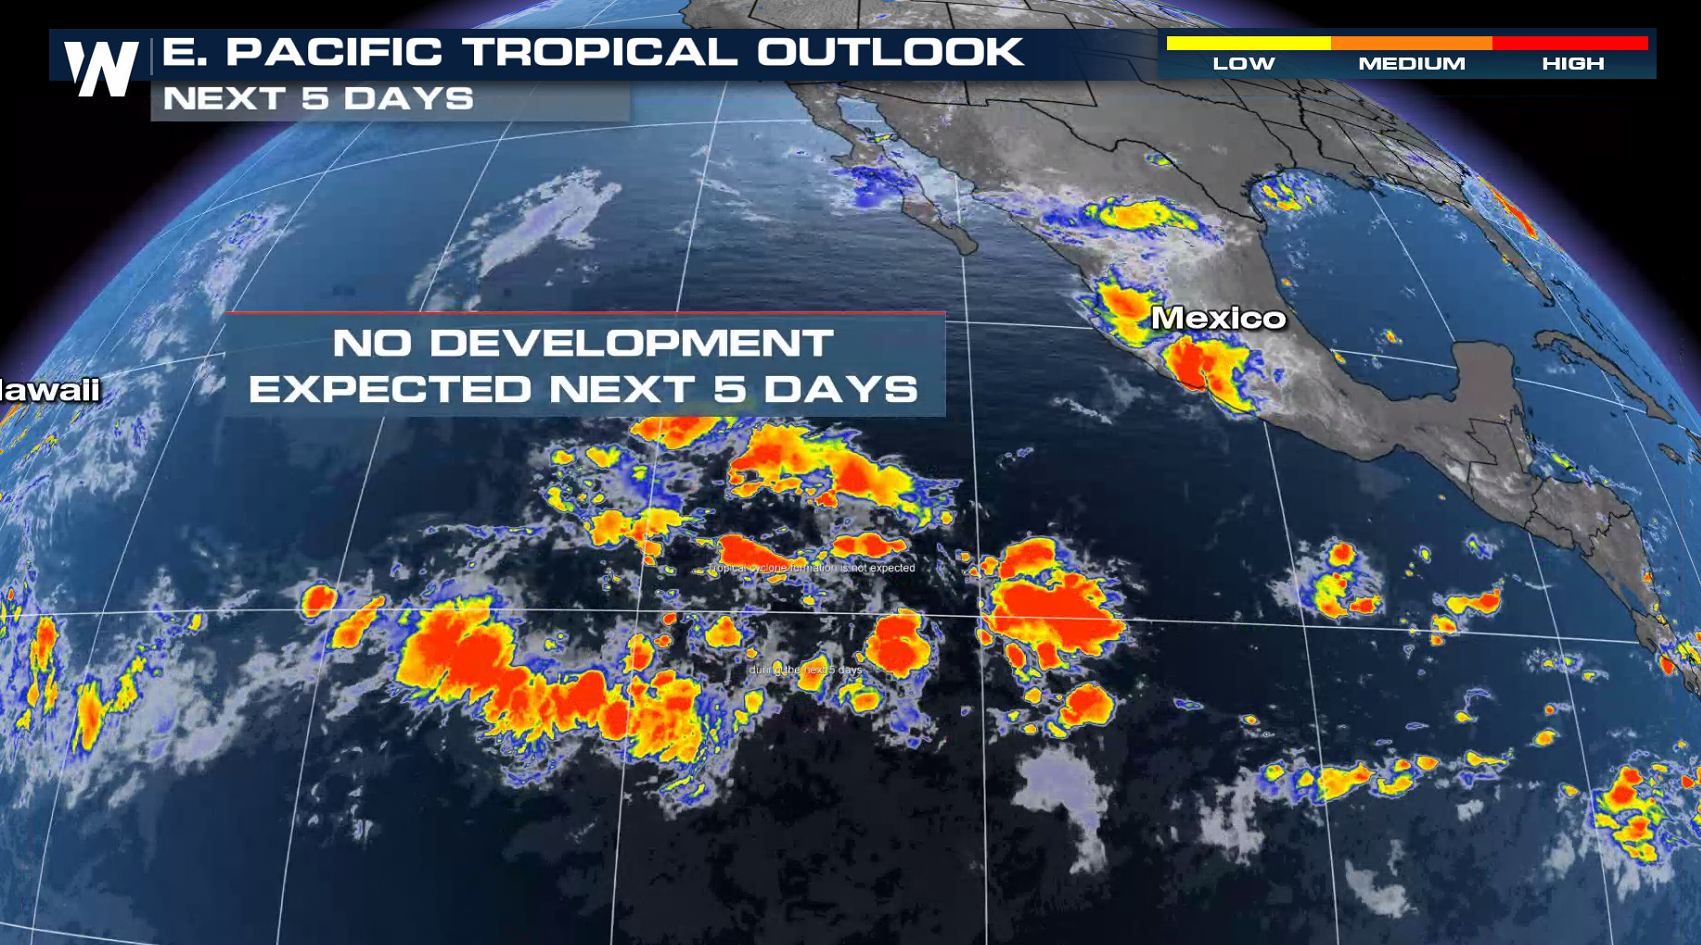 Felicia and Guillermo Weaken in the Pacific